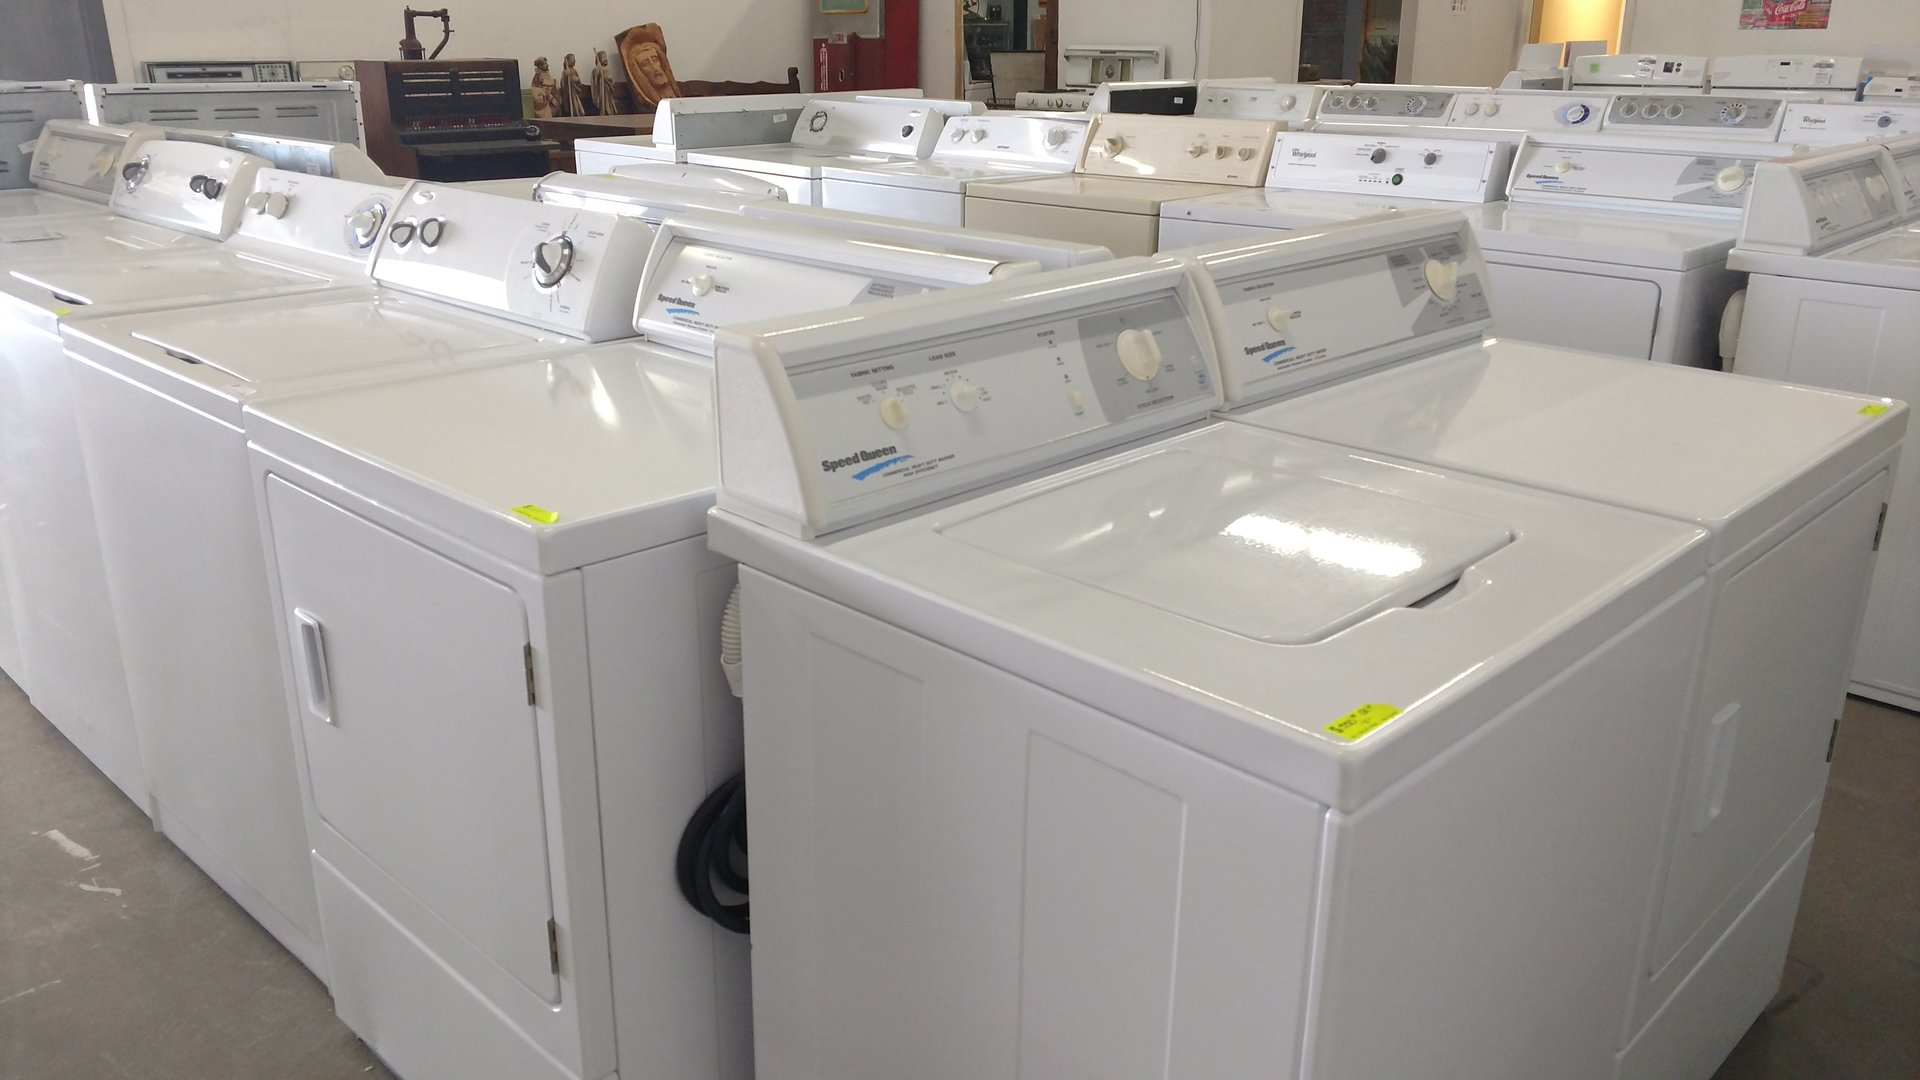 Sample of washers & dryers